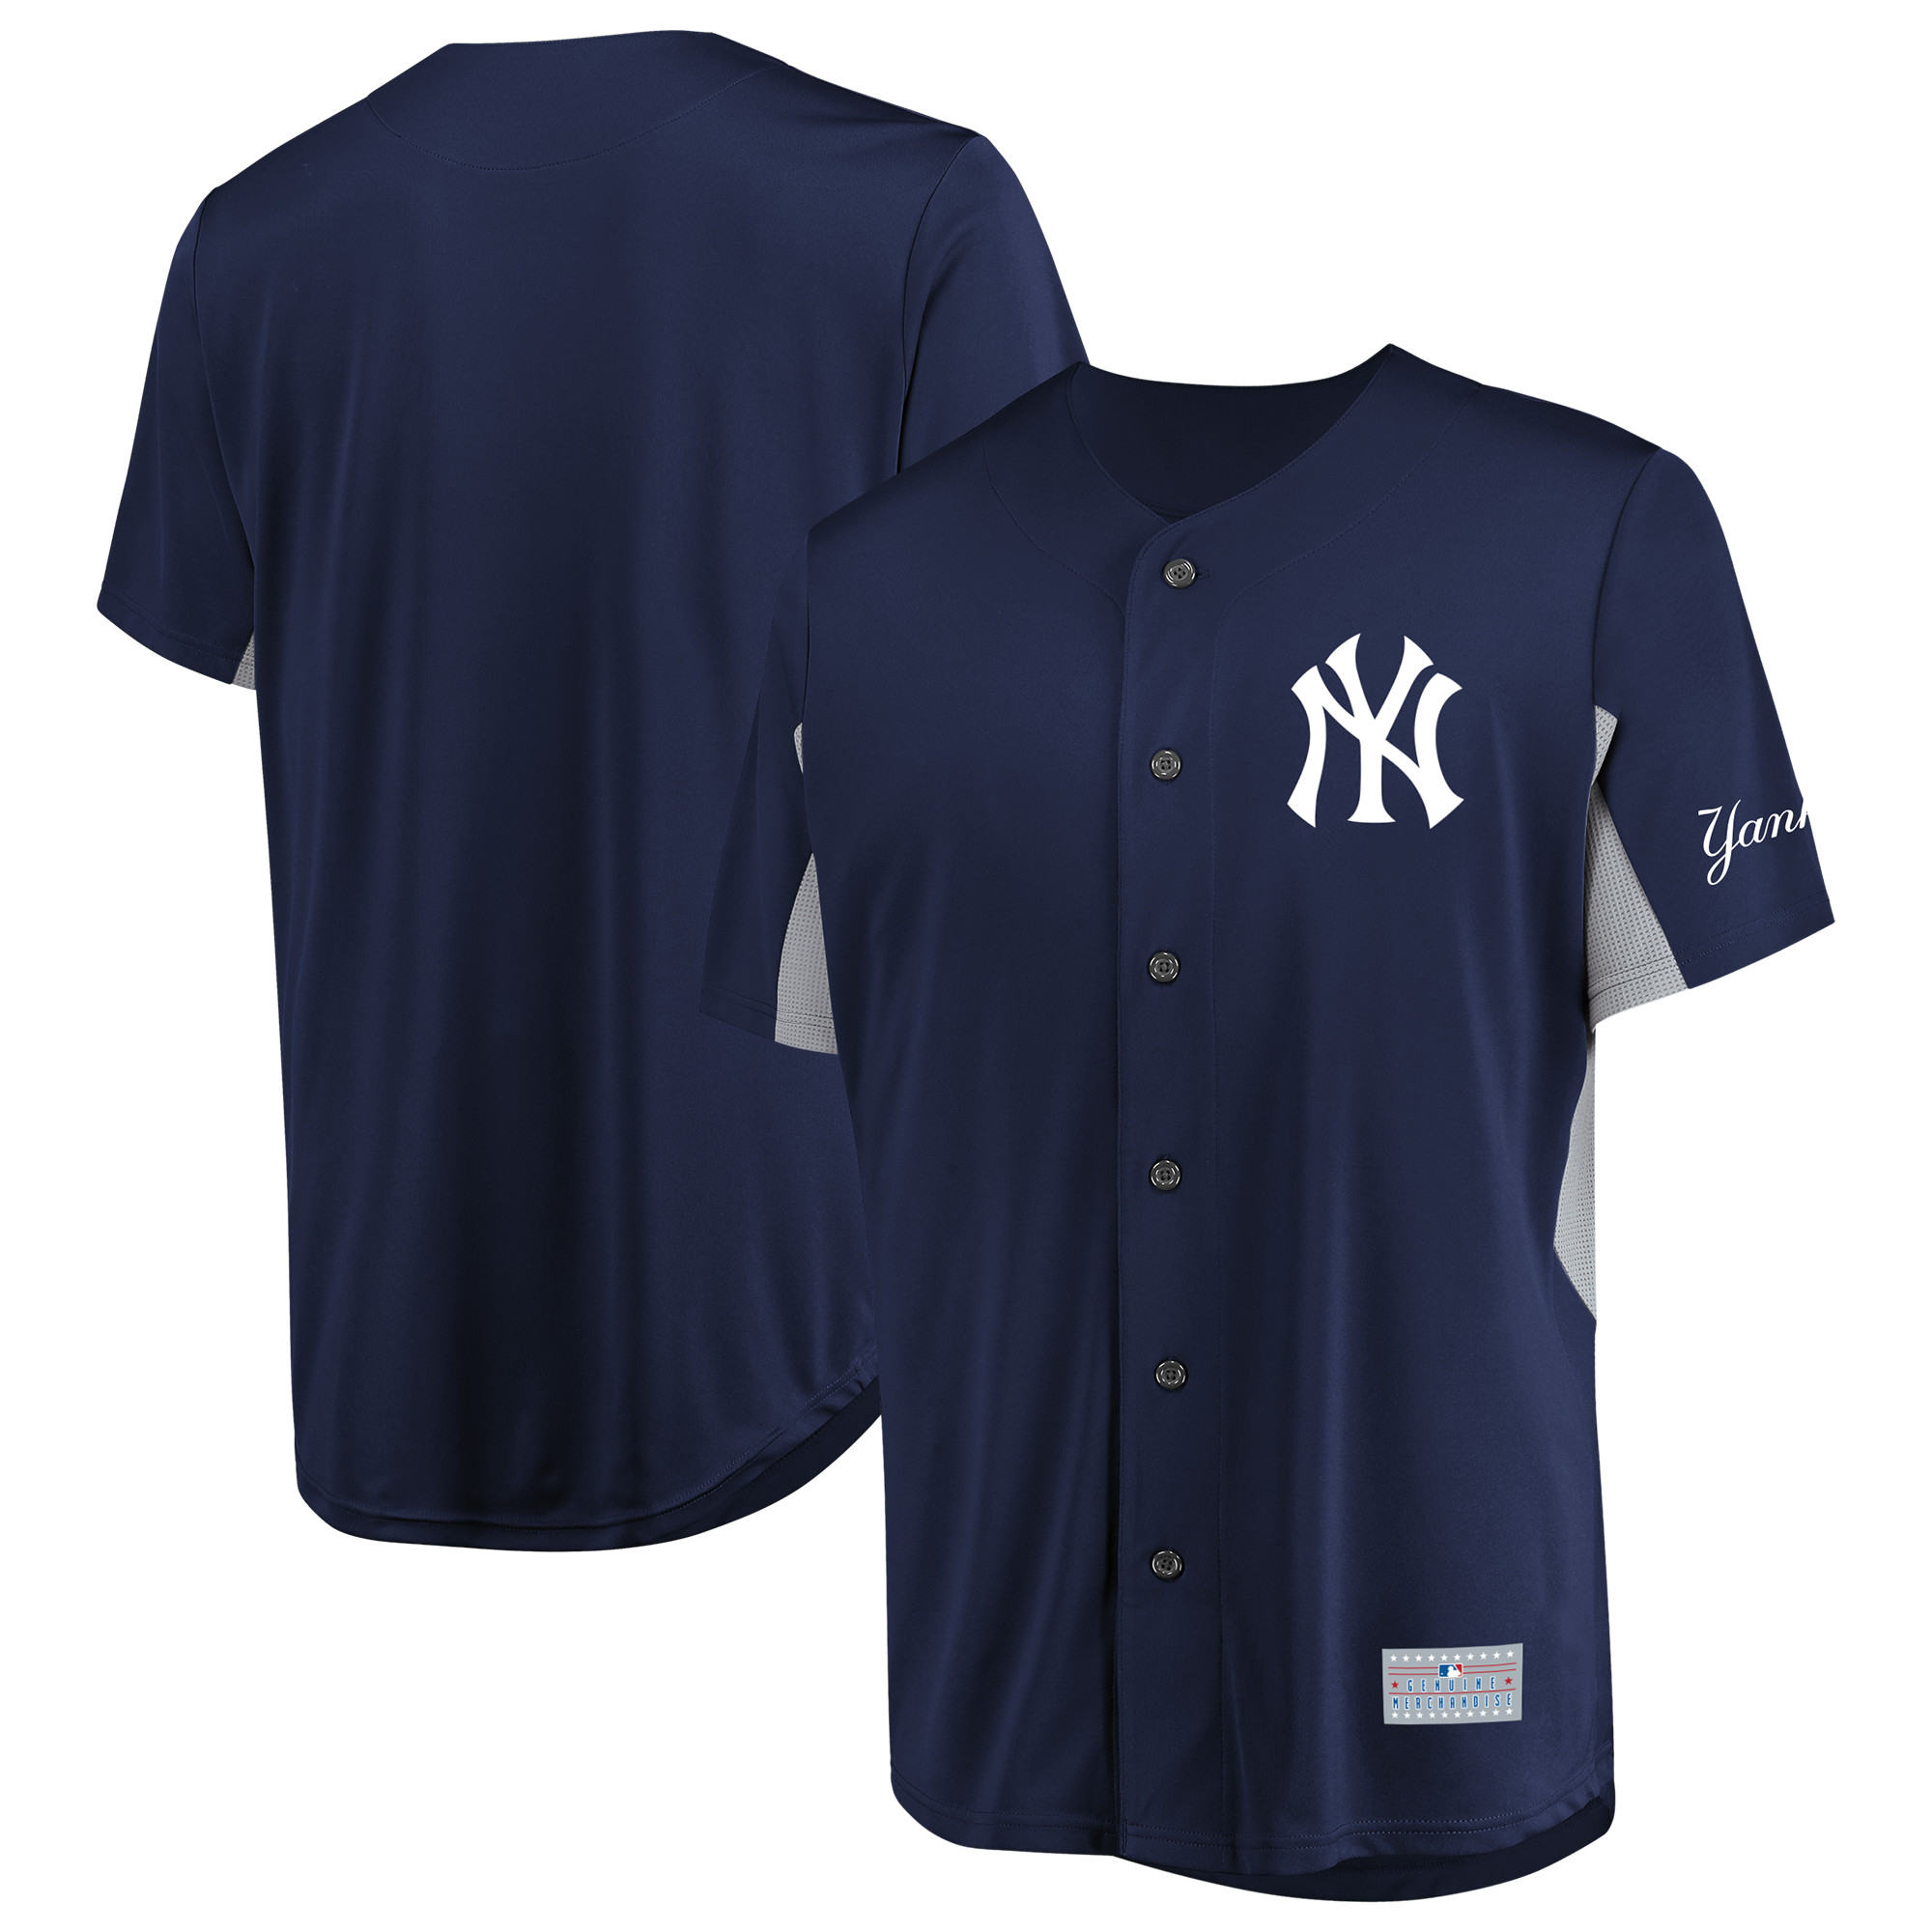 Men's Majestic Navy New York Yankees Champion Choice Jersey